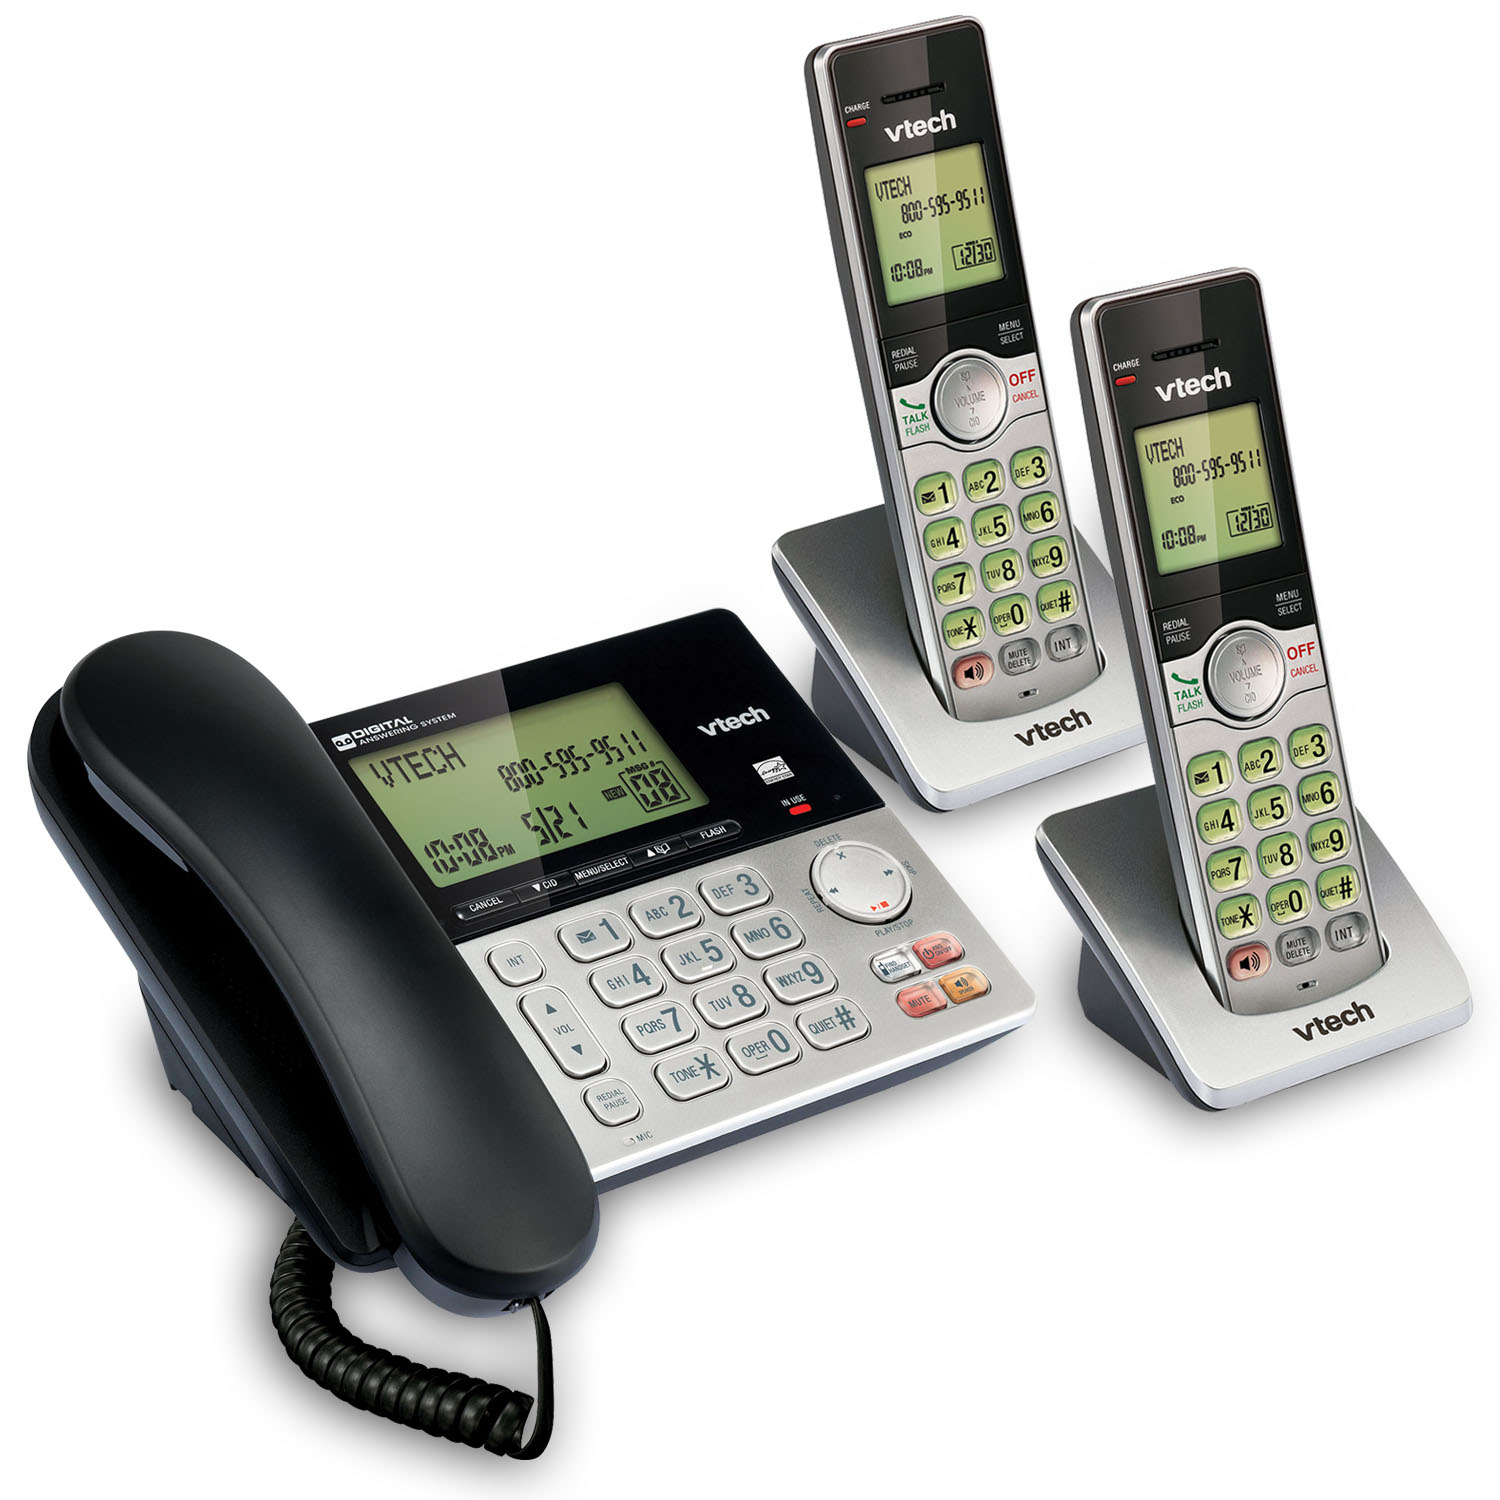 VTech CS6949-2 DECT 6.0 Expandable Cordless Phone with Answering System and Caller ID, 2 Handsets, Silver/Black